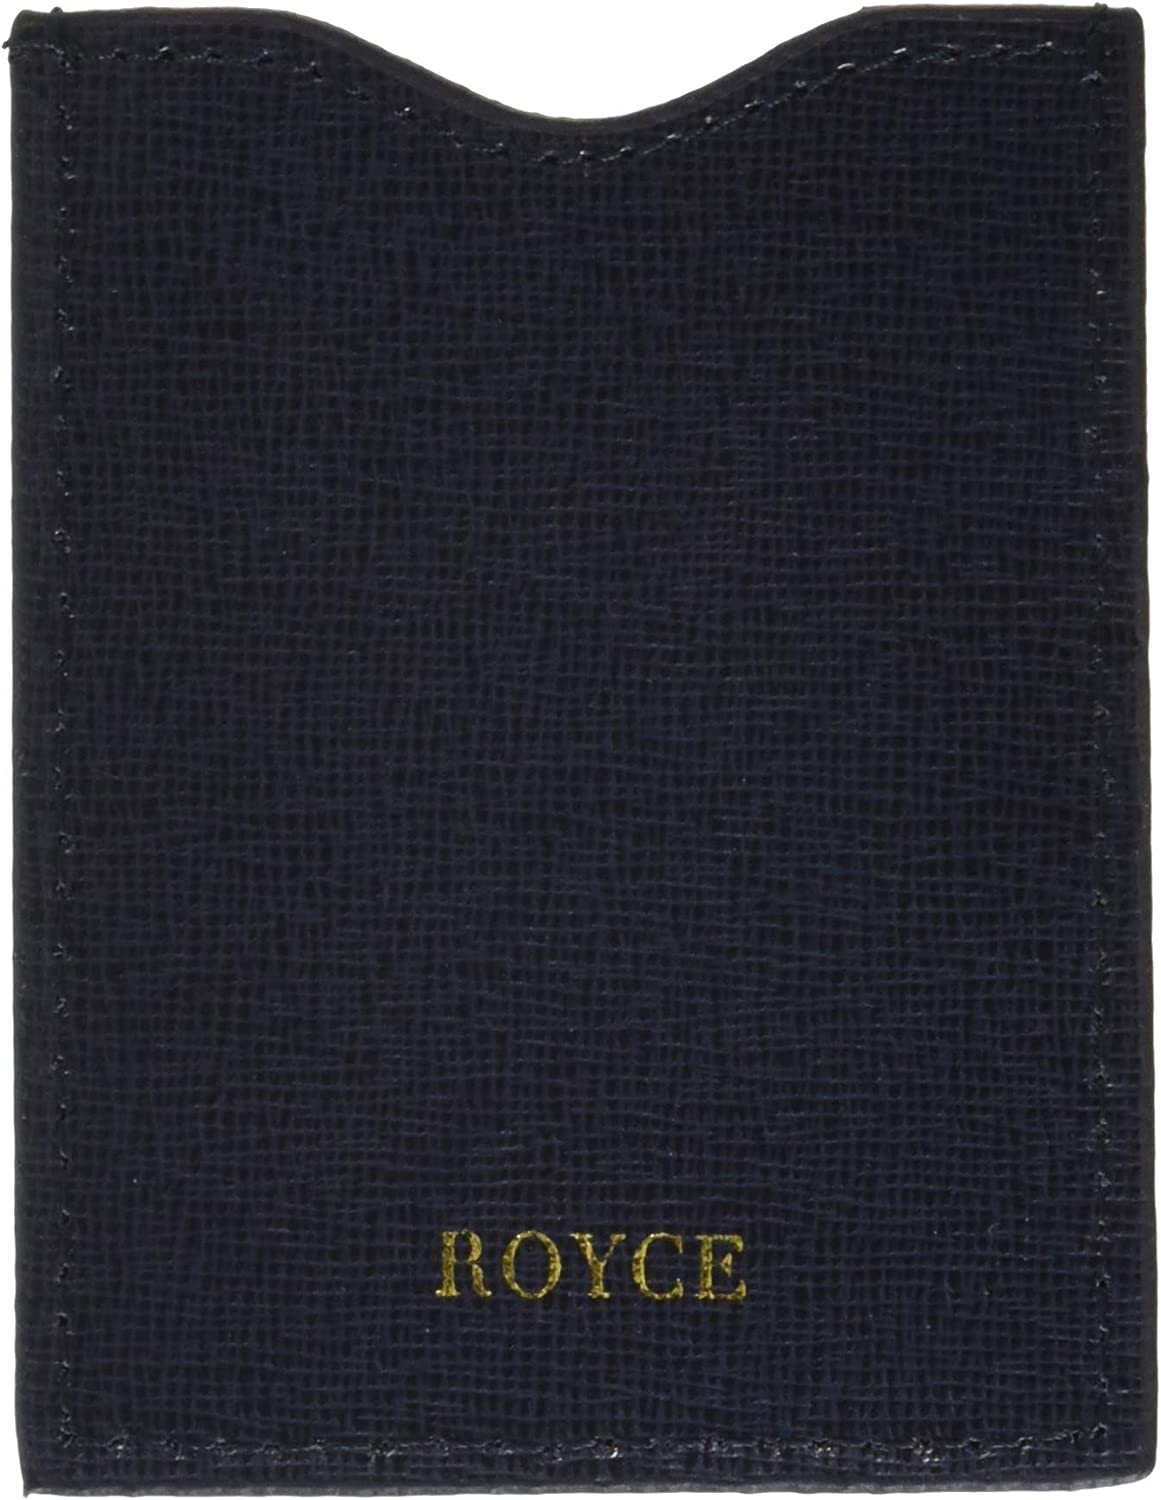 One Size Blue Royce Leather RFID Blocking Credit Card Sleeve in Saffiano Leather